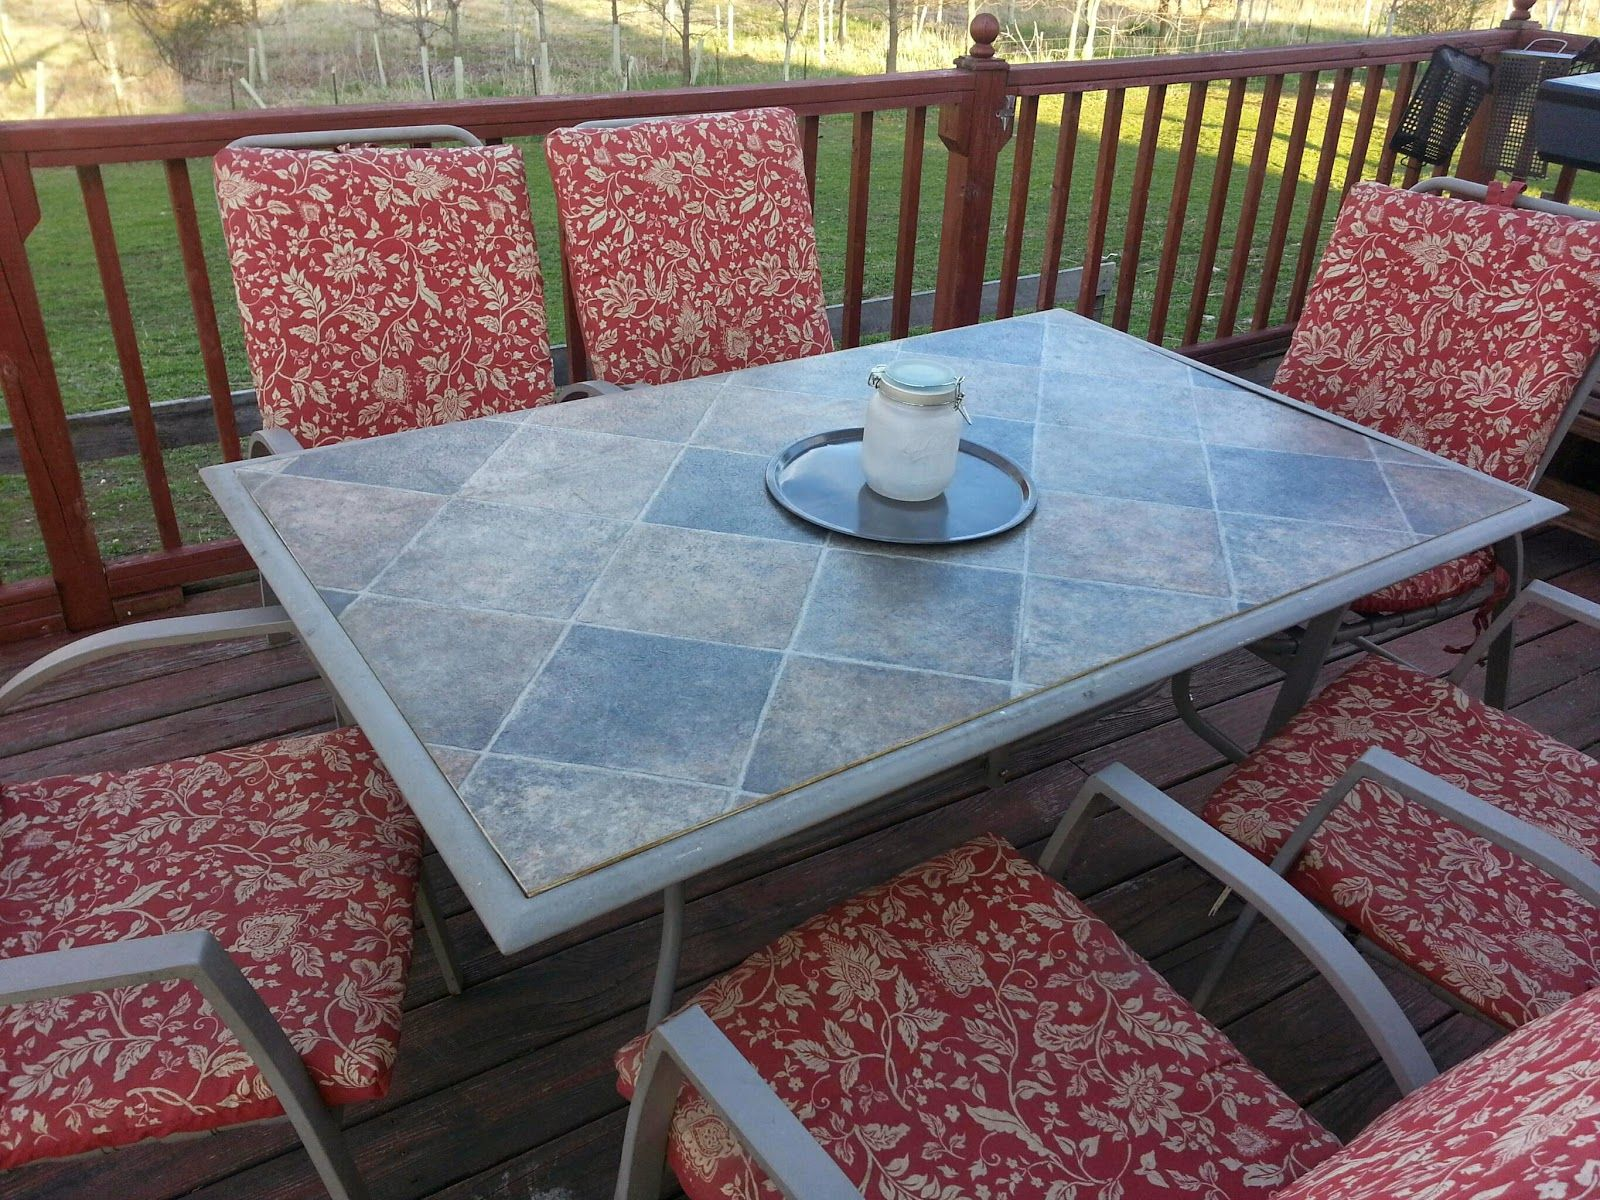 Replacing The Broken Glass on Our Patio Table - | Tips | Pinterest ...